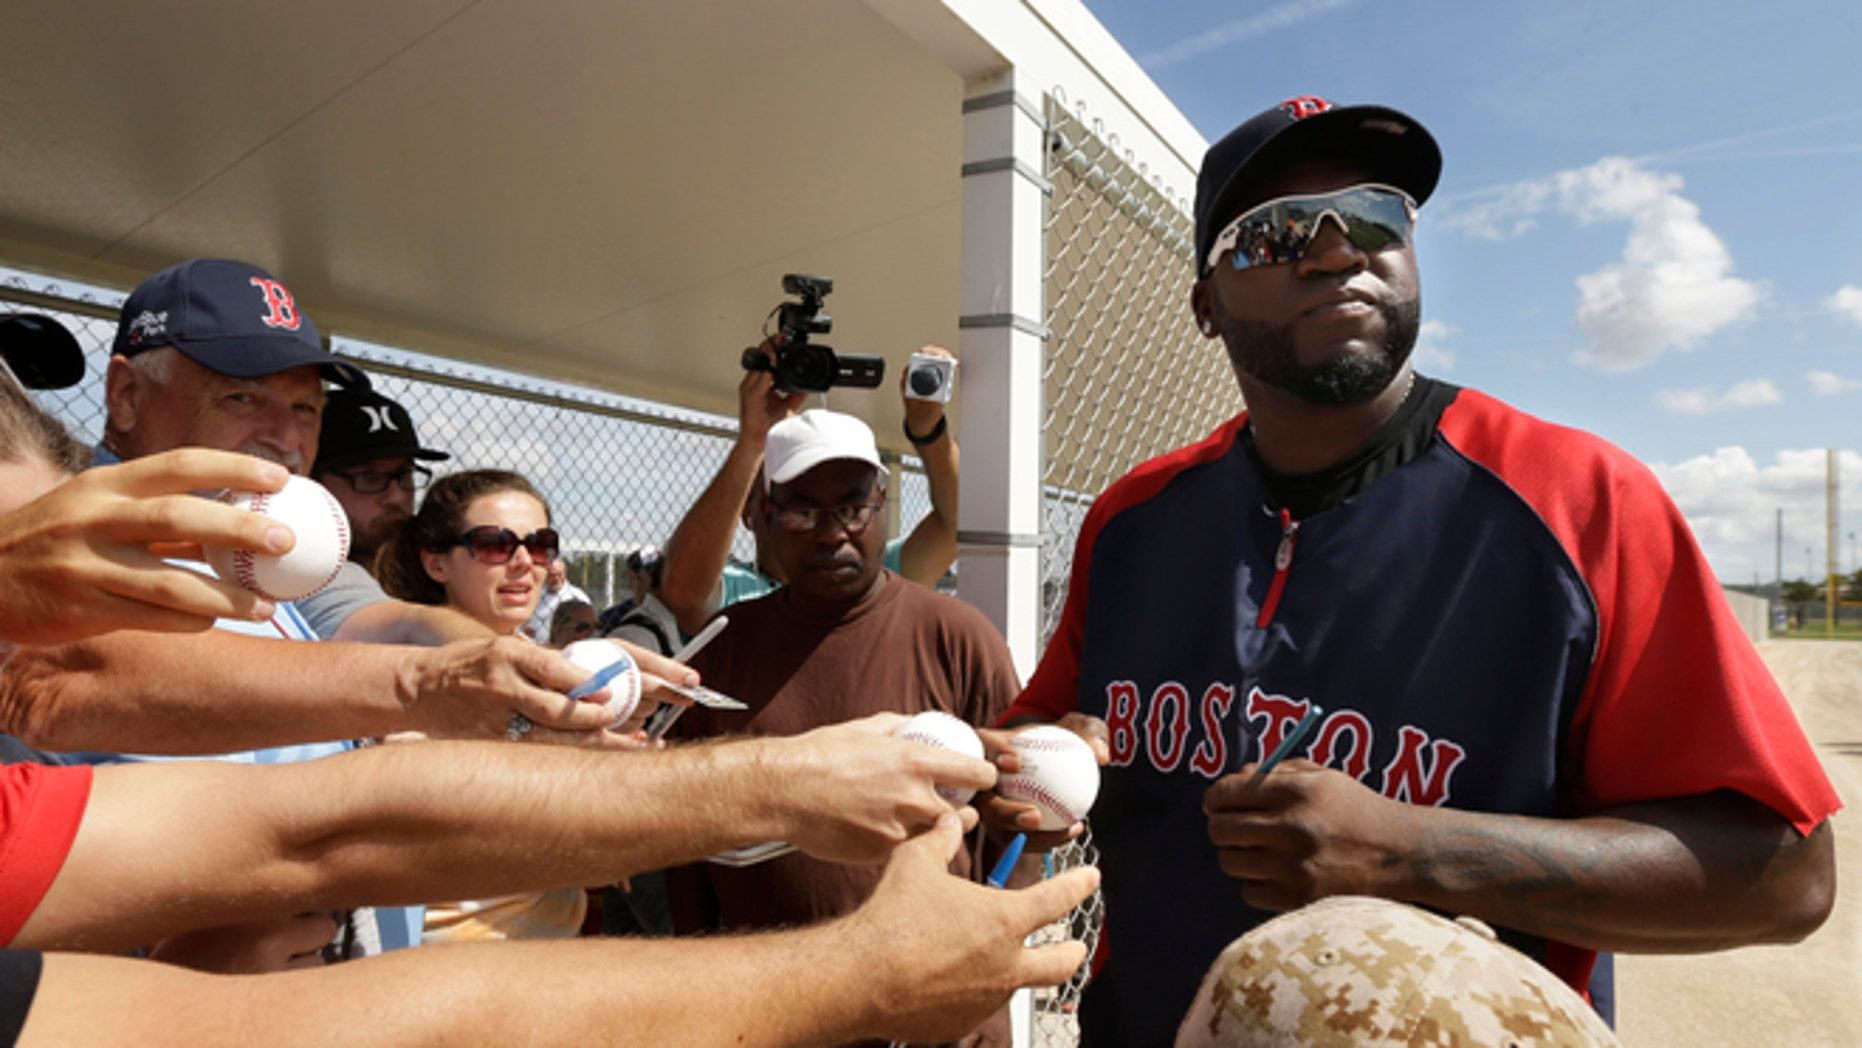 Boston Red Sox designated hitter David Ortiz signs autographs during spring training baseball practice, Sunday, Feb. 23, 2014, in Fort Myers, Fla. (AP Photo/Steven Senne)